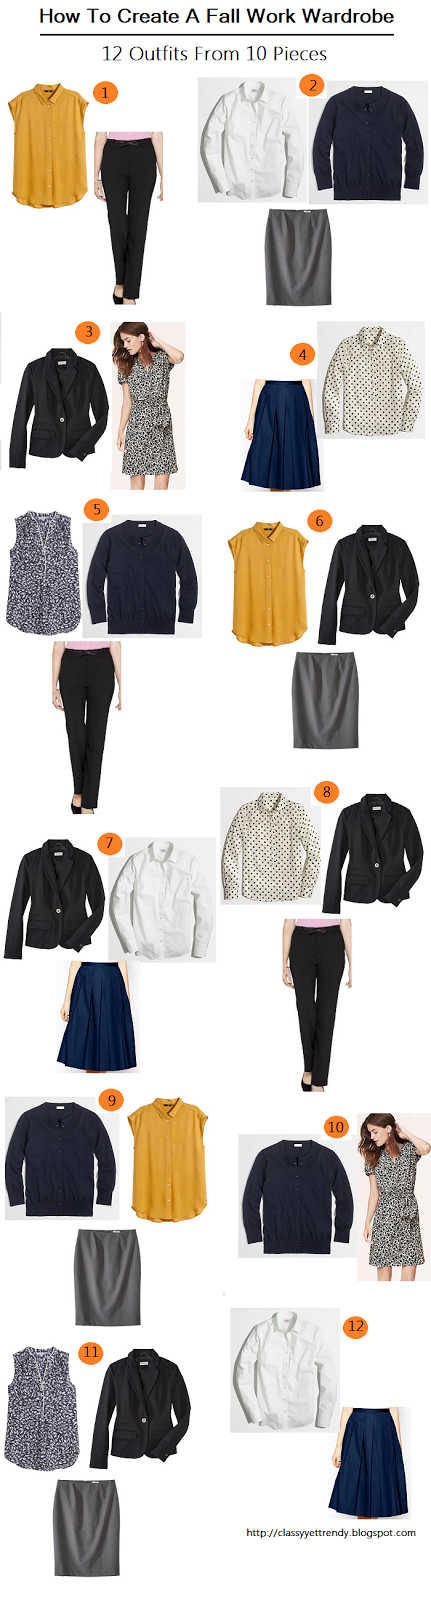 How to Create A Fall Wardrobe Part II: 12 Outfits From 10 Pieces